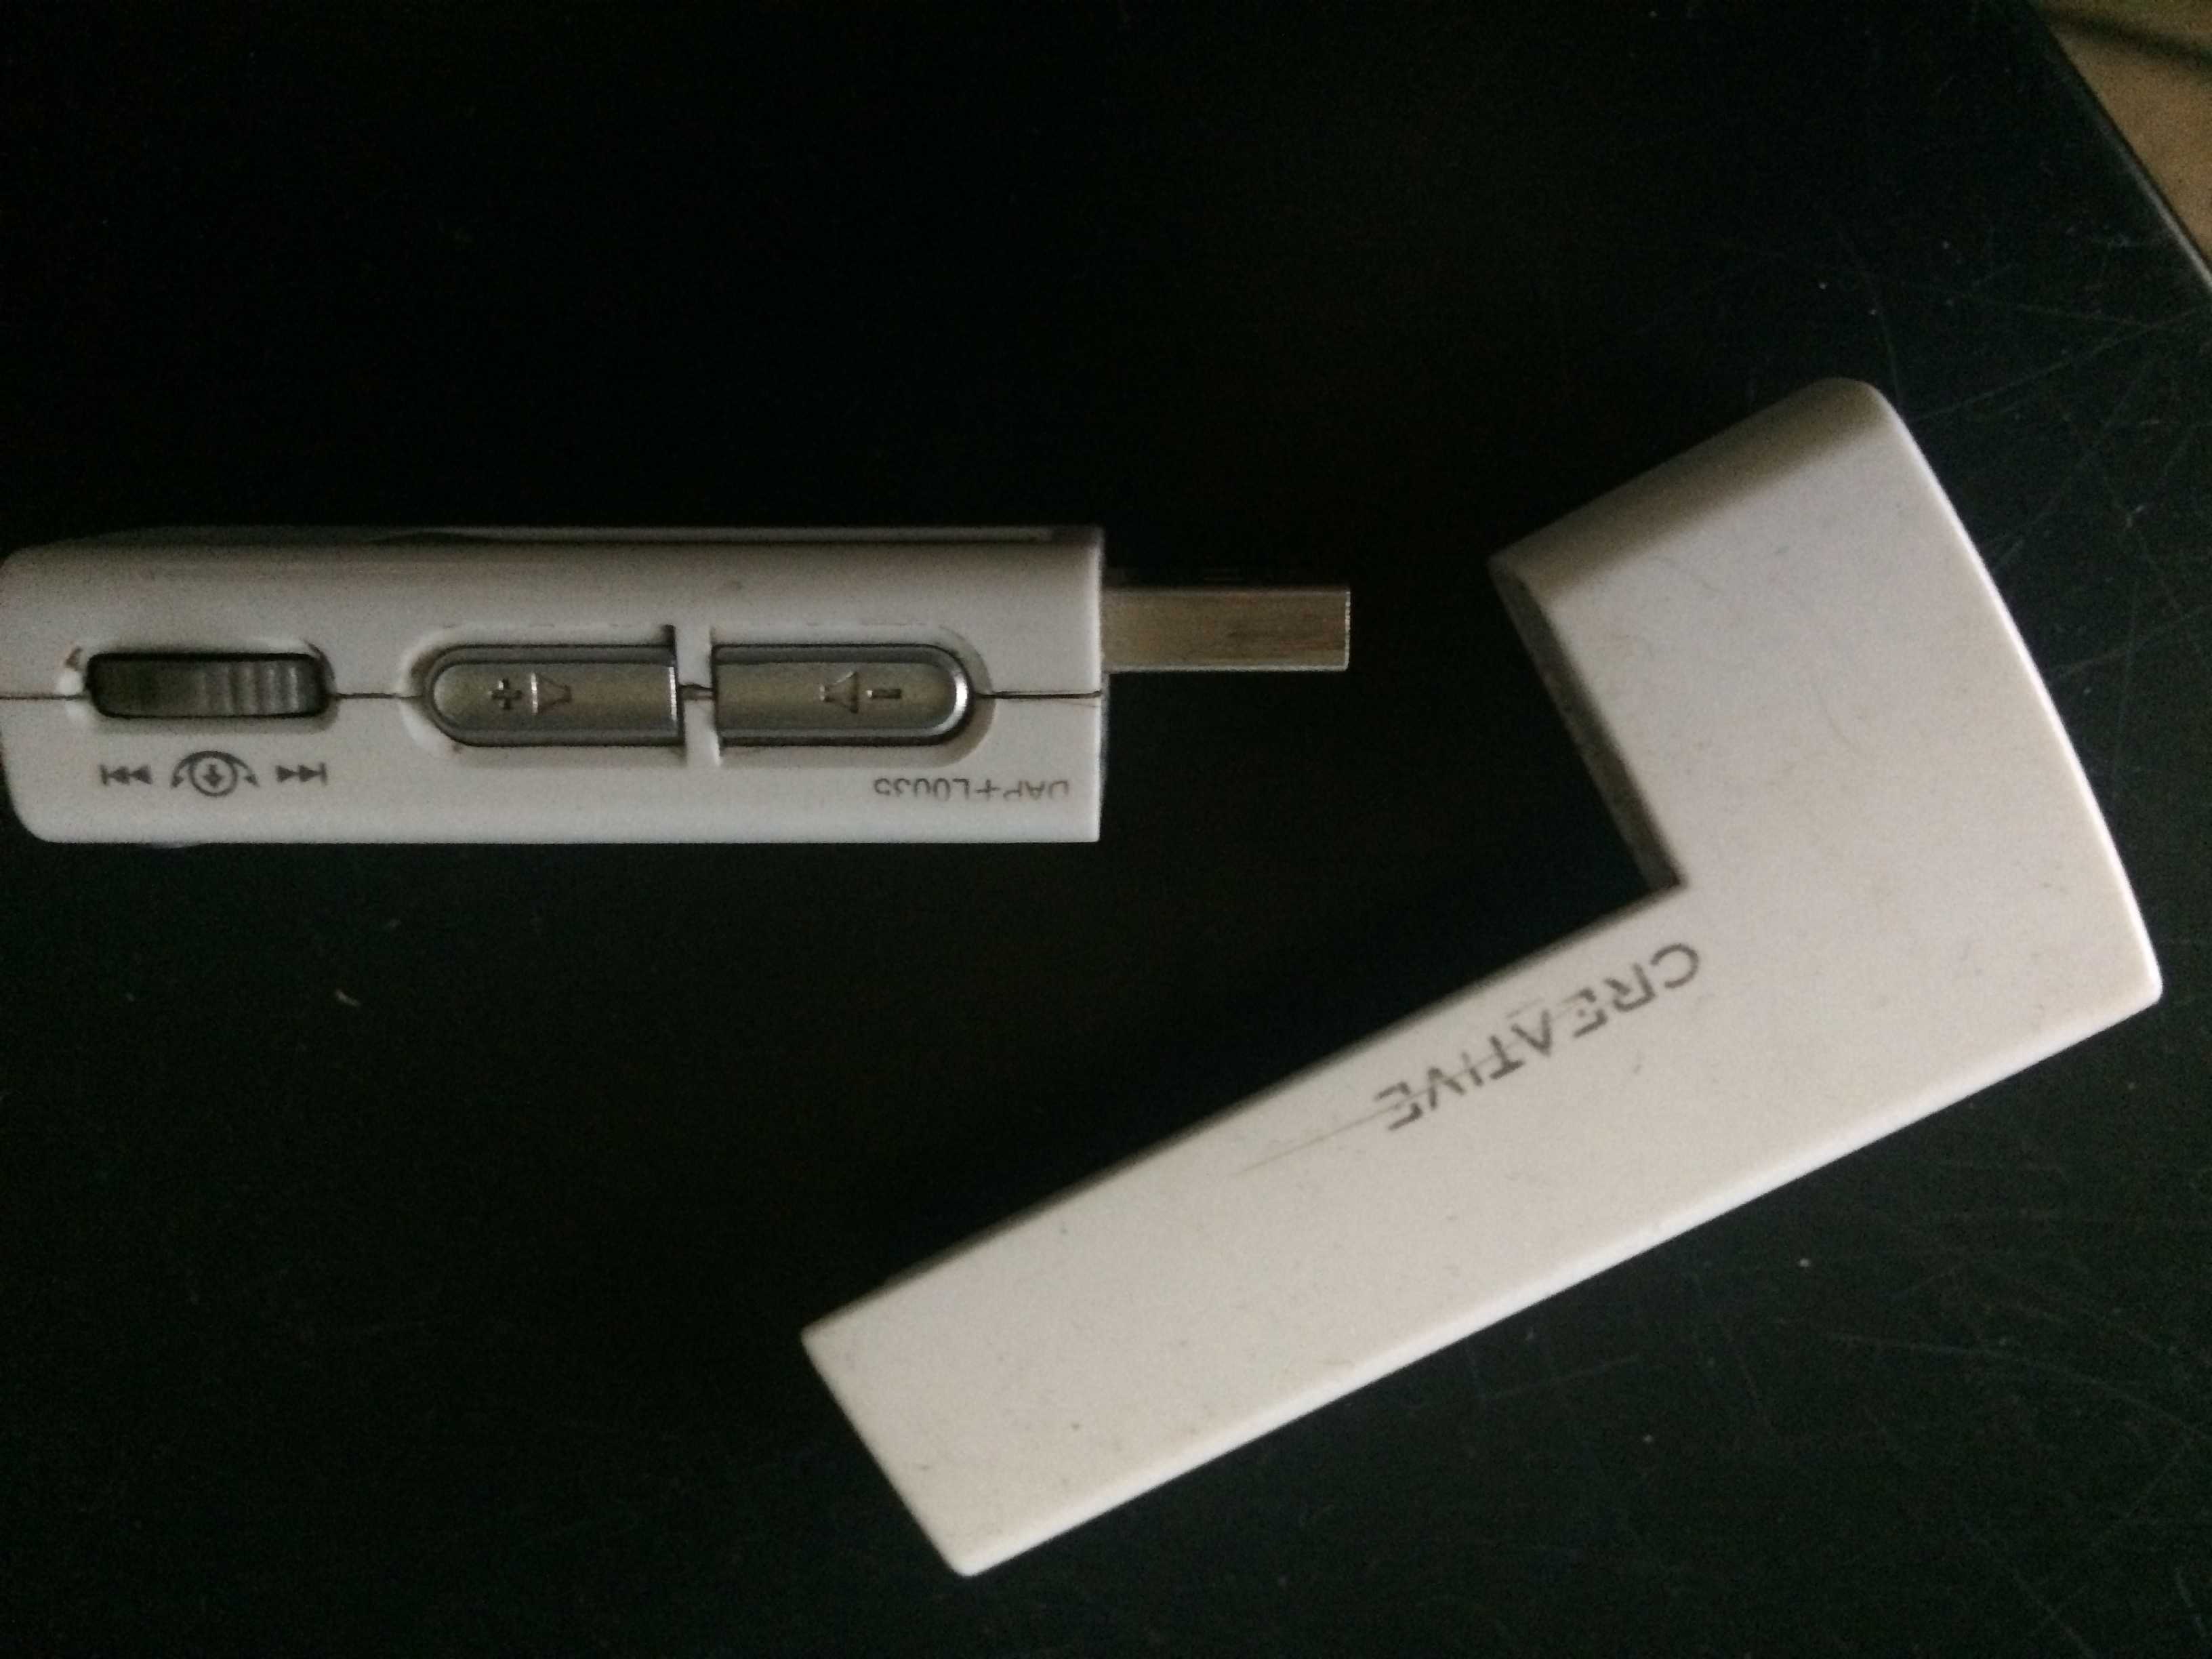 MUVO STMP 3500 DRIVERS FOR MAC DOWNLOAD